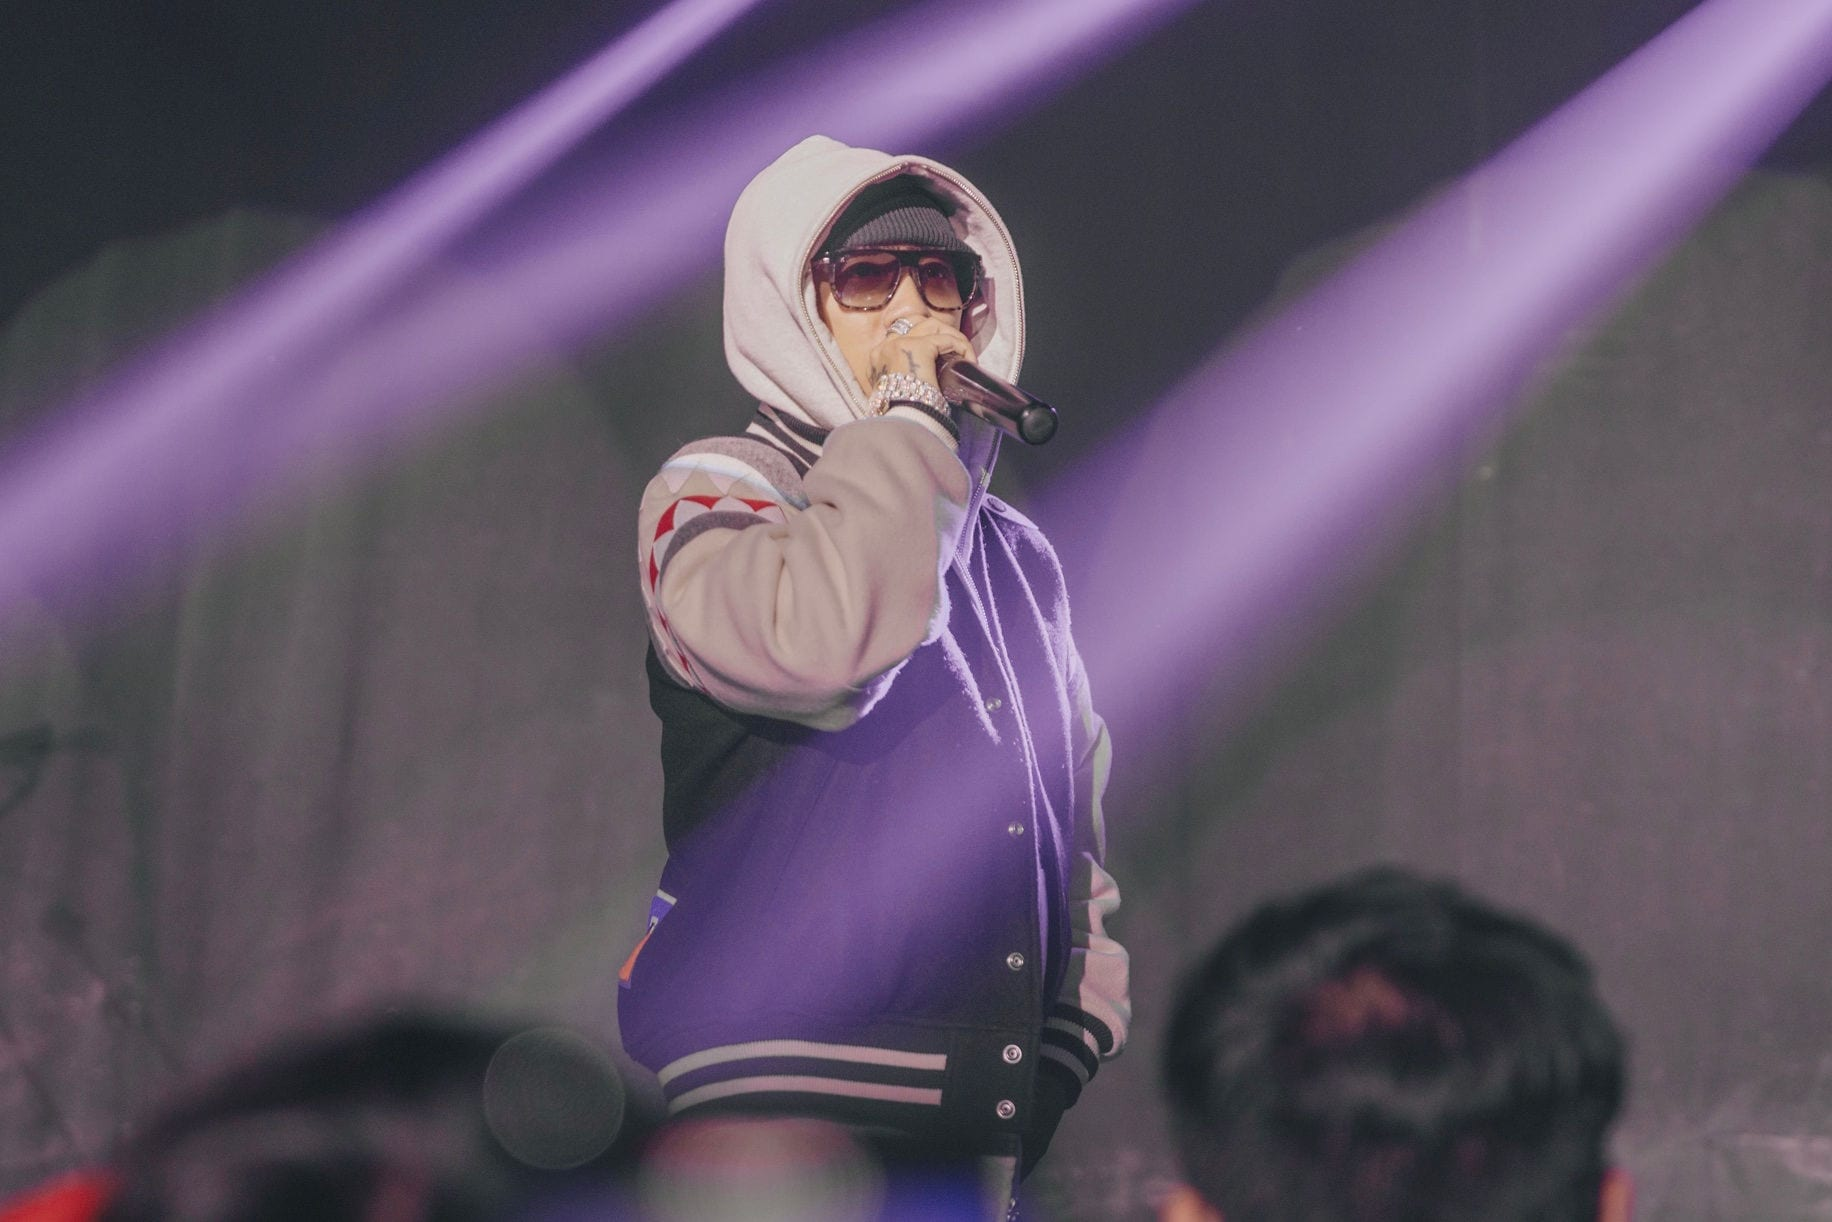 PHOTO GALLERY: Dok2 Brought The Heat To Atlanta With High-Energy Concert